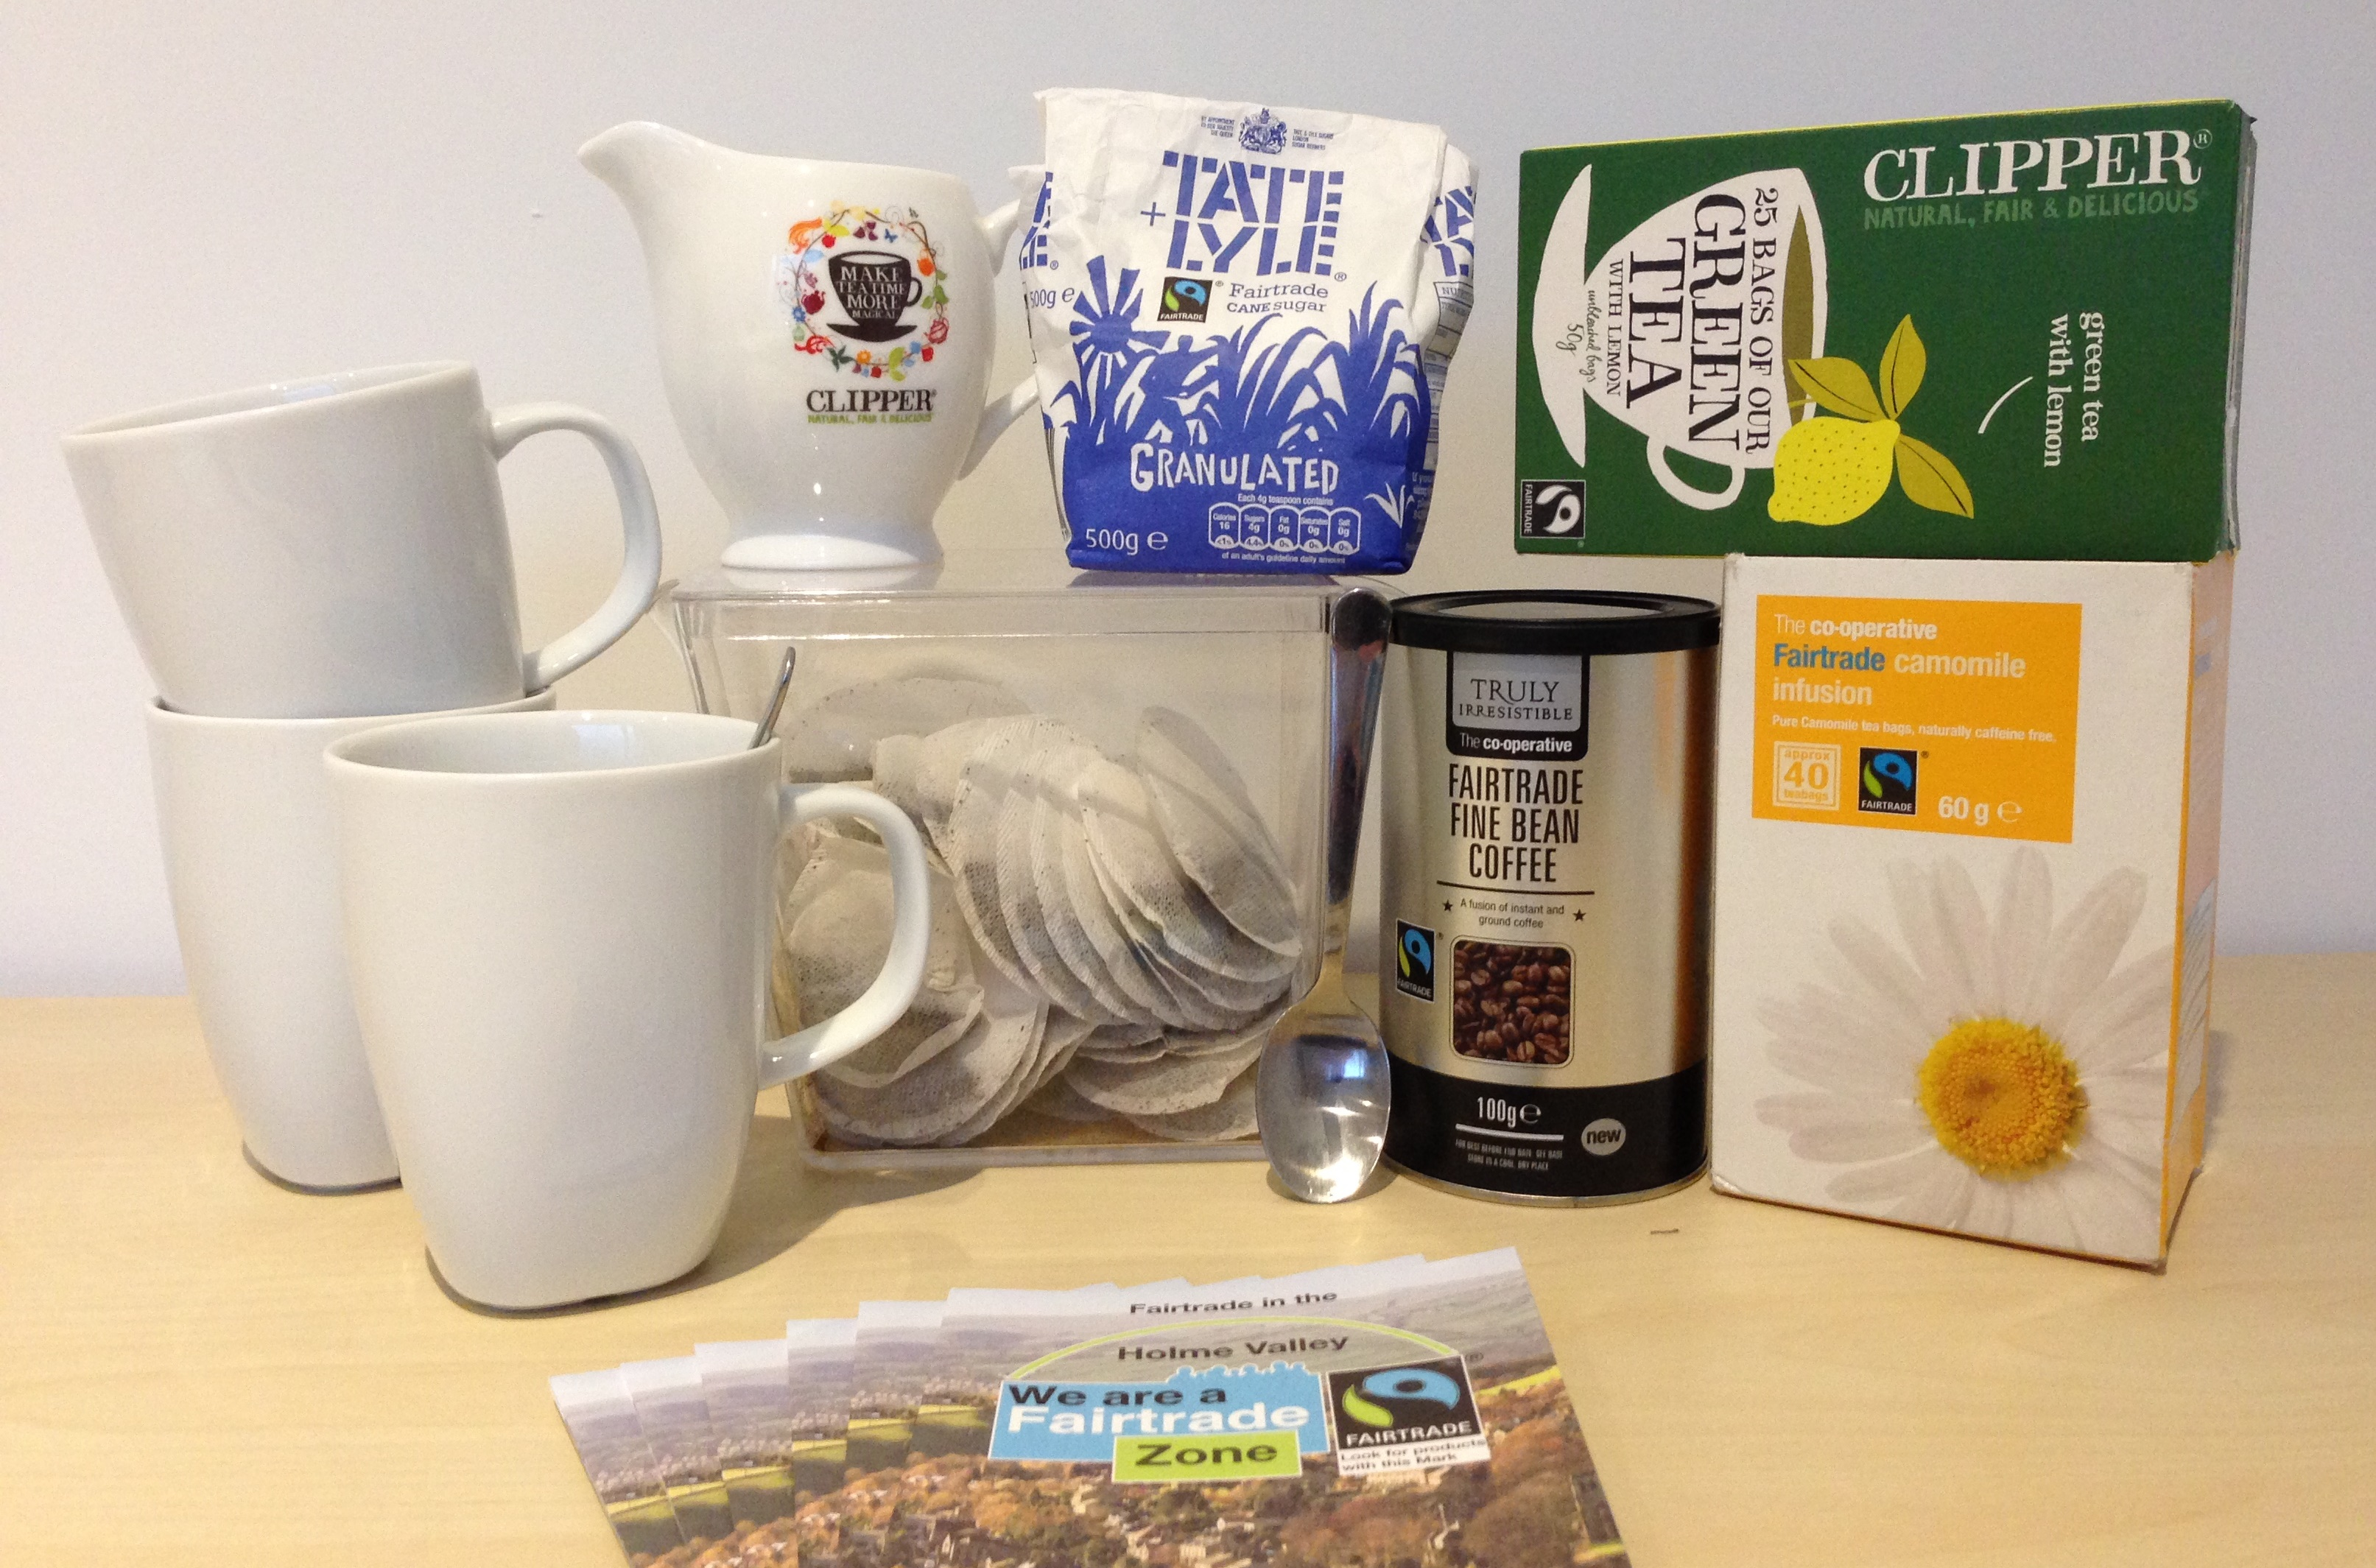 We provide Fairtrade tea, coffee and sugar at all our events